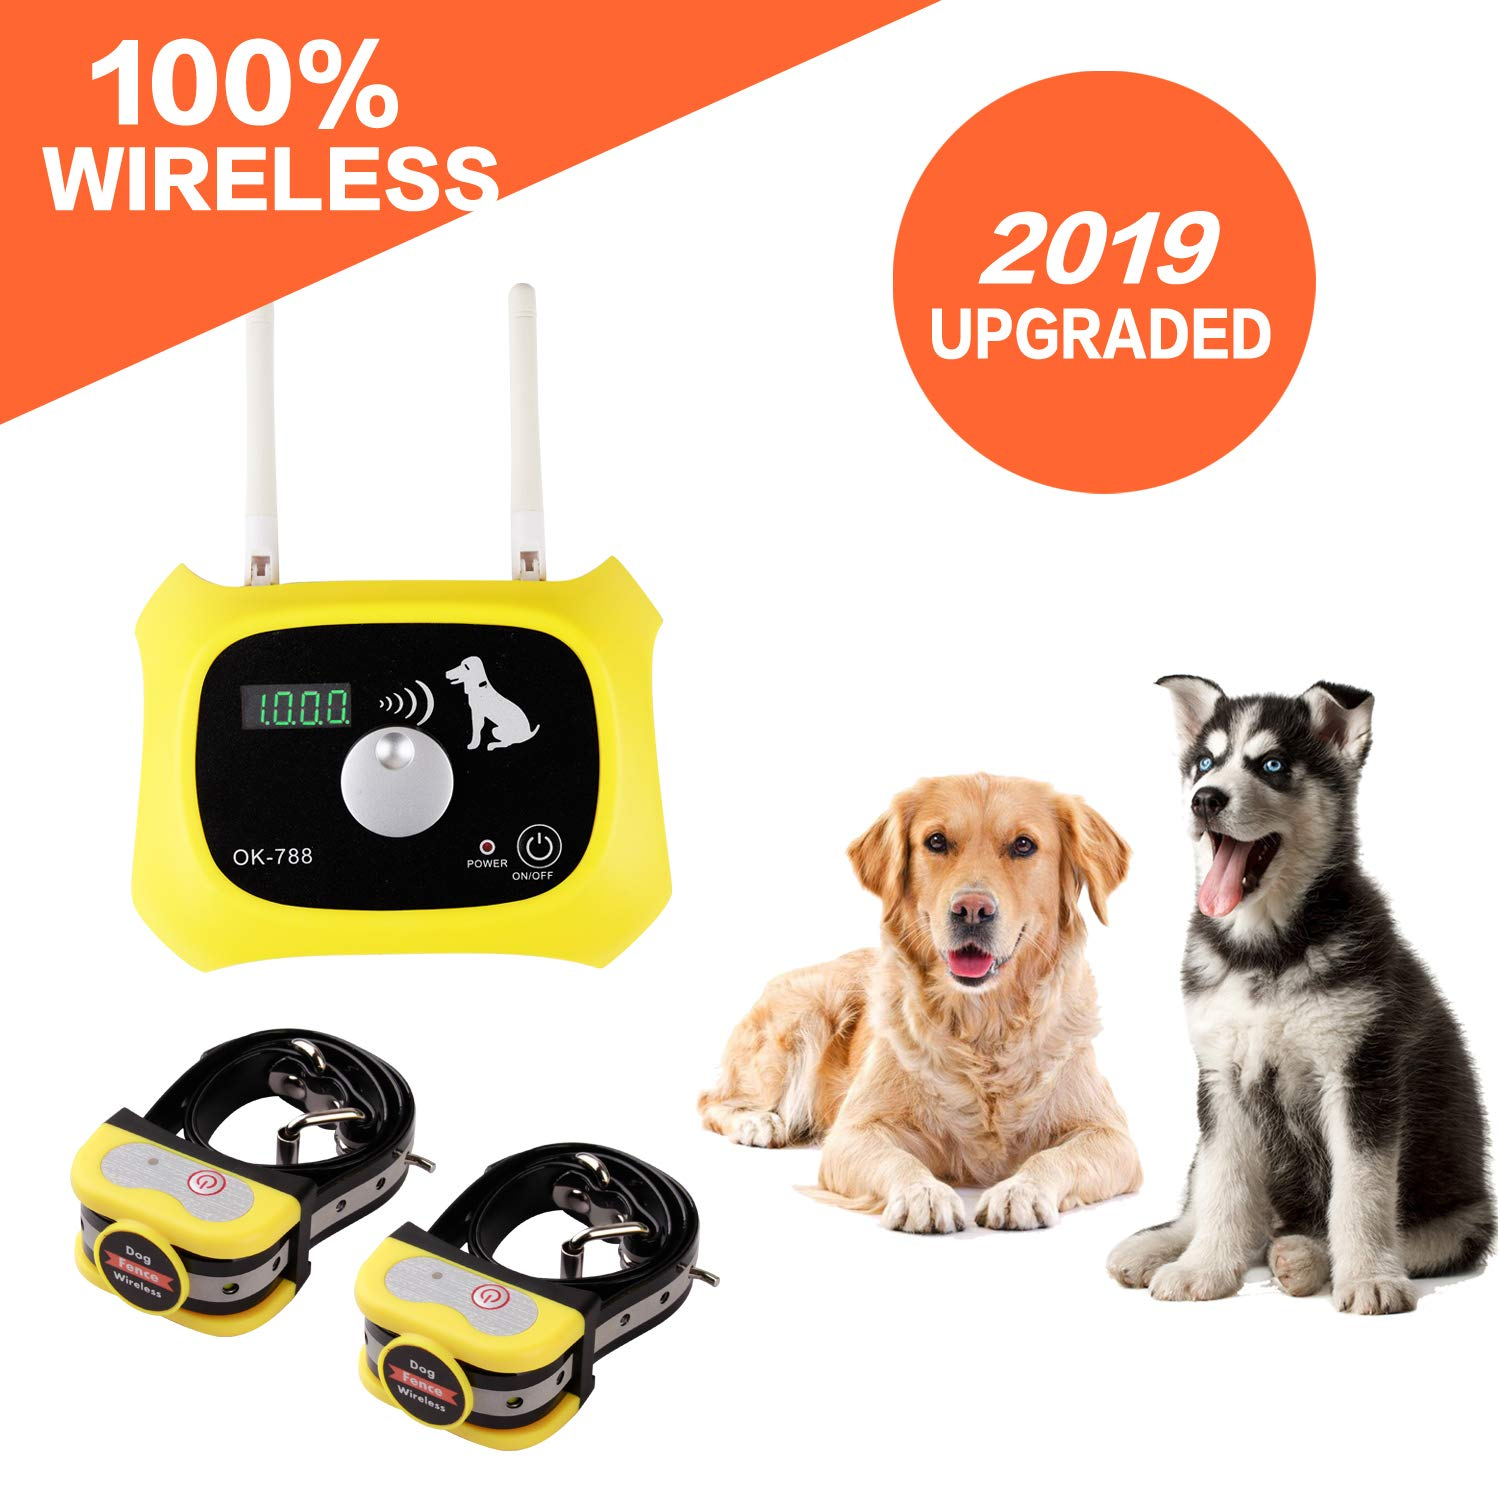 Wireless Dog Fence Electric Pet Containment System, Safe Effective No Randomly Shock Design, Adjustable Control Range 1000 Feet & Display Distance, Rechargeable Waterproof IPX7 Collar (2 Dog System) by JUSTSTART (Image #1)